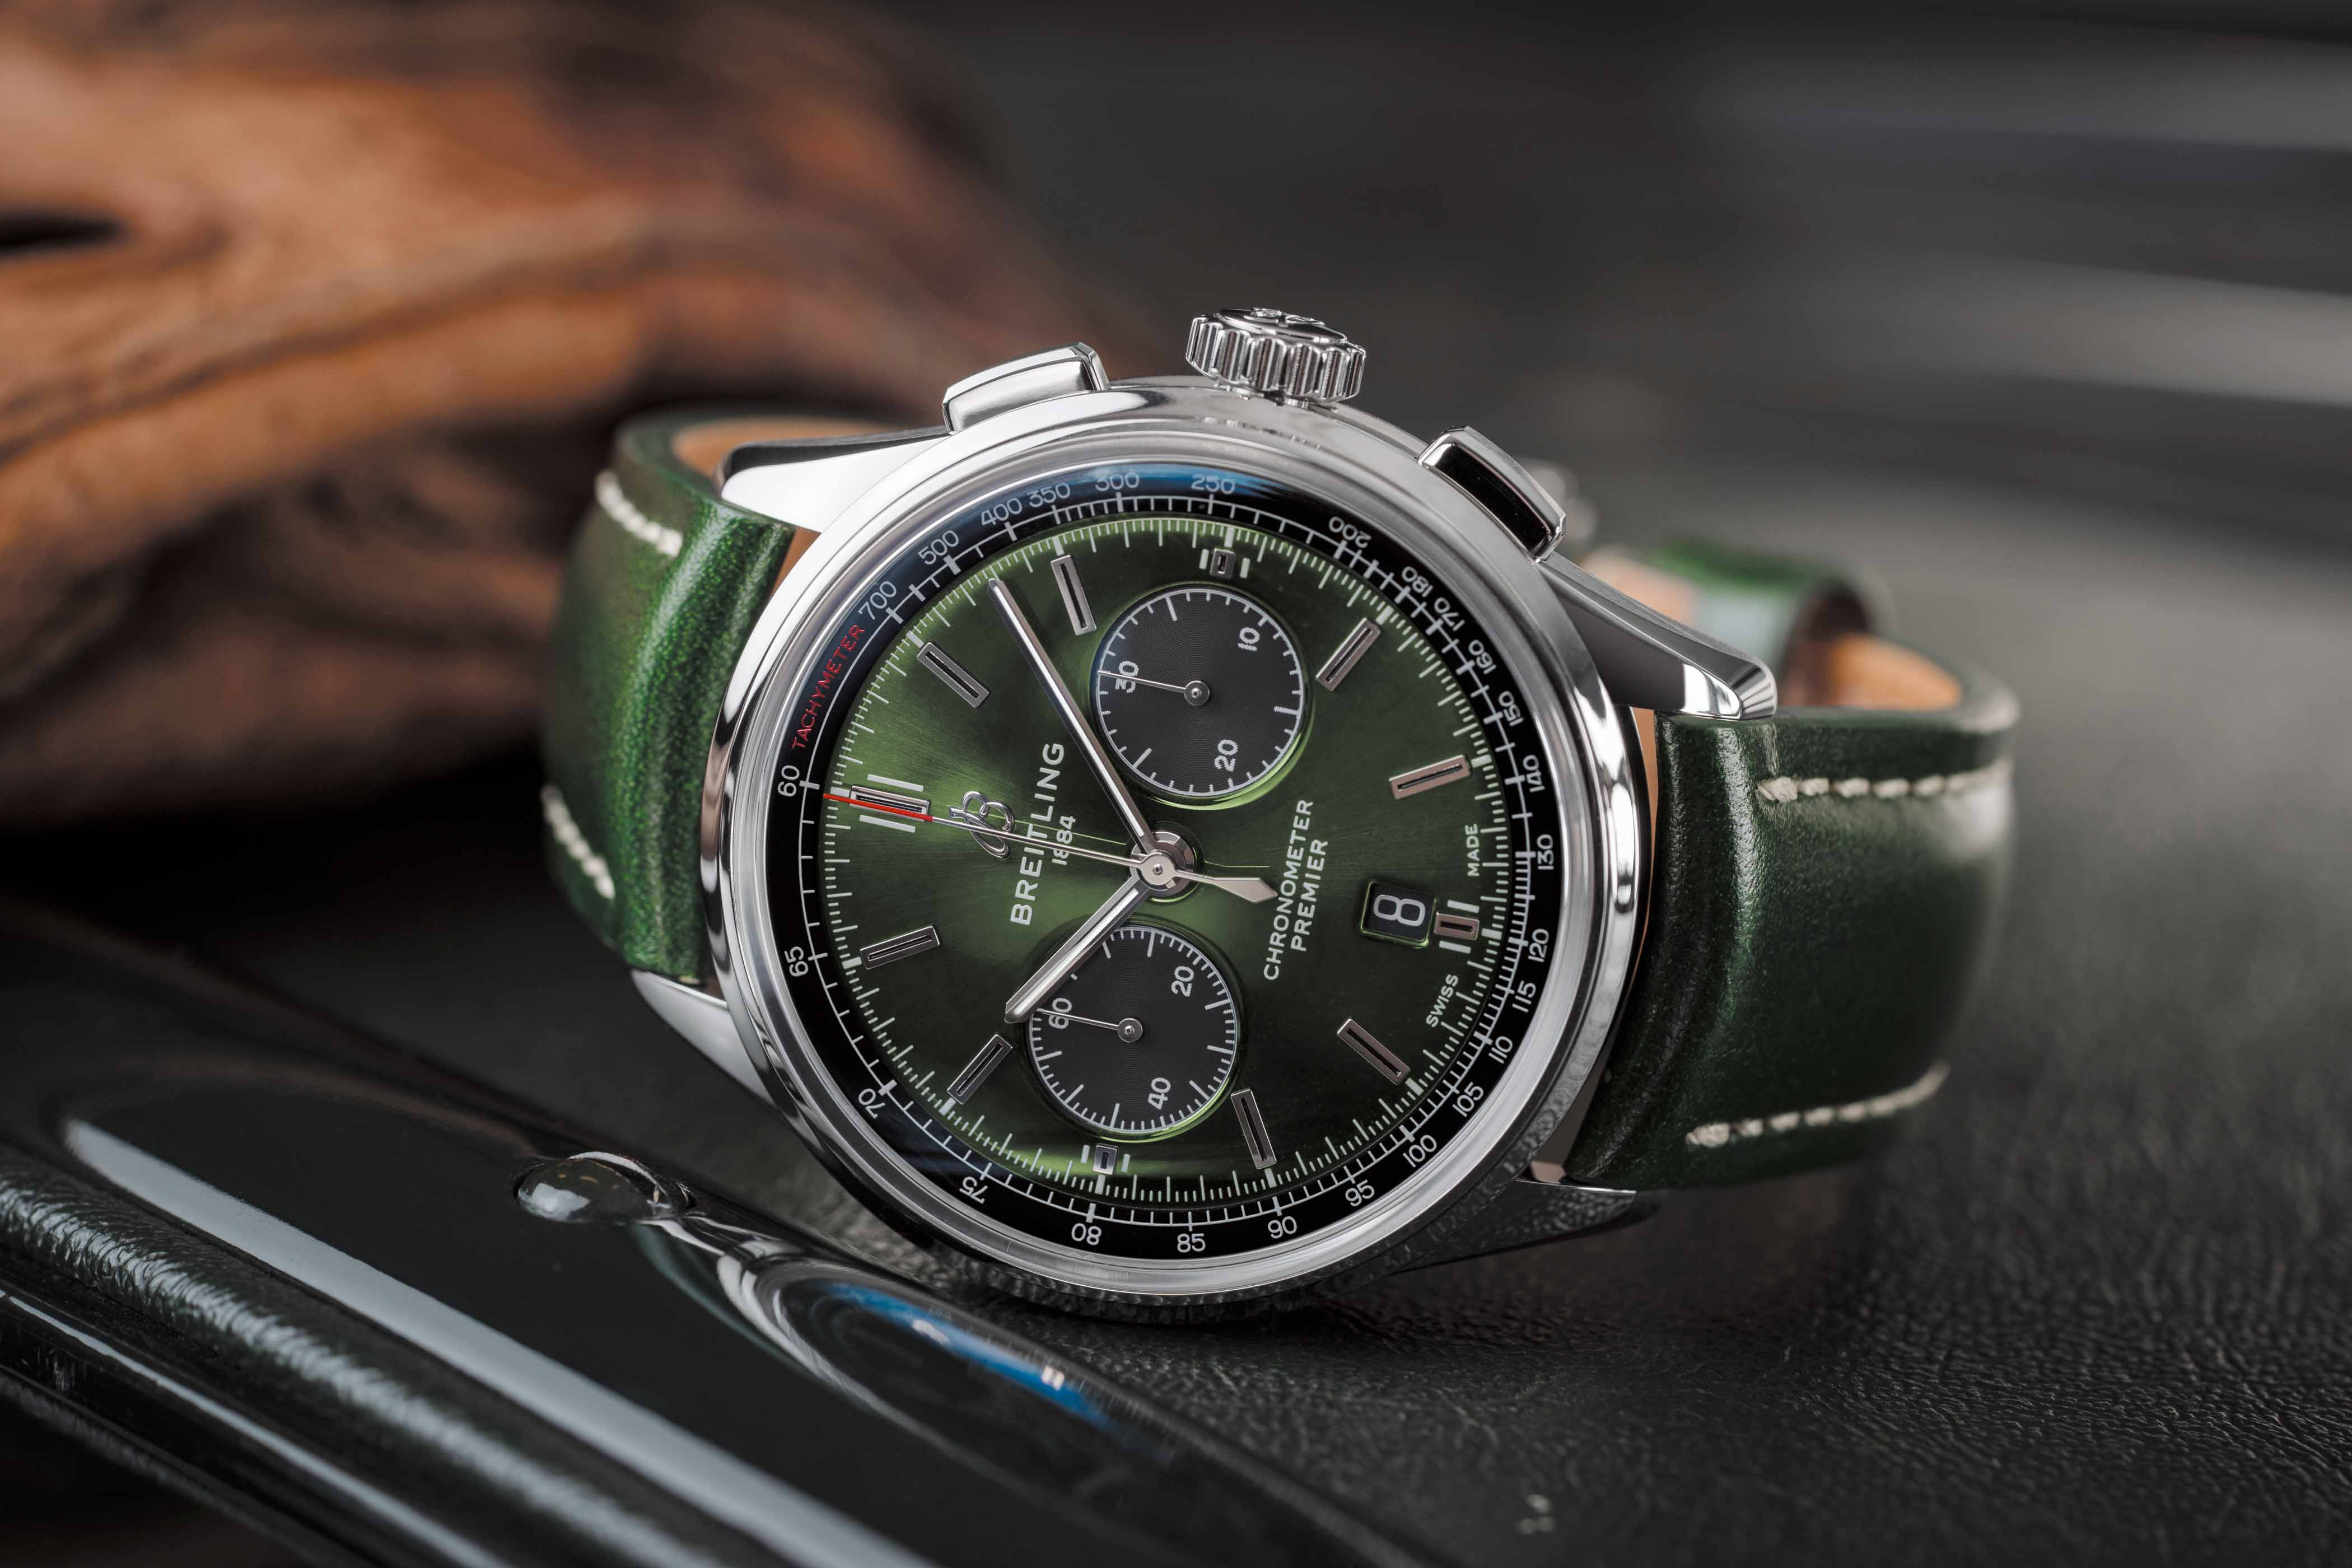 Breitling marks Bentley's centenary in 2019 with the Premier B01 Chronograph 42